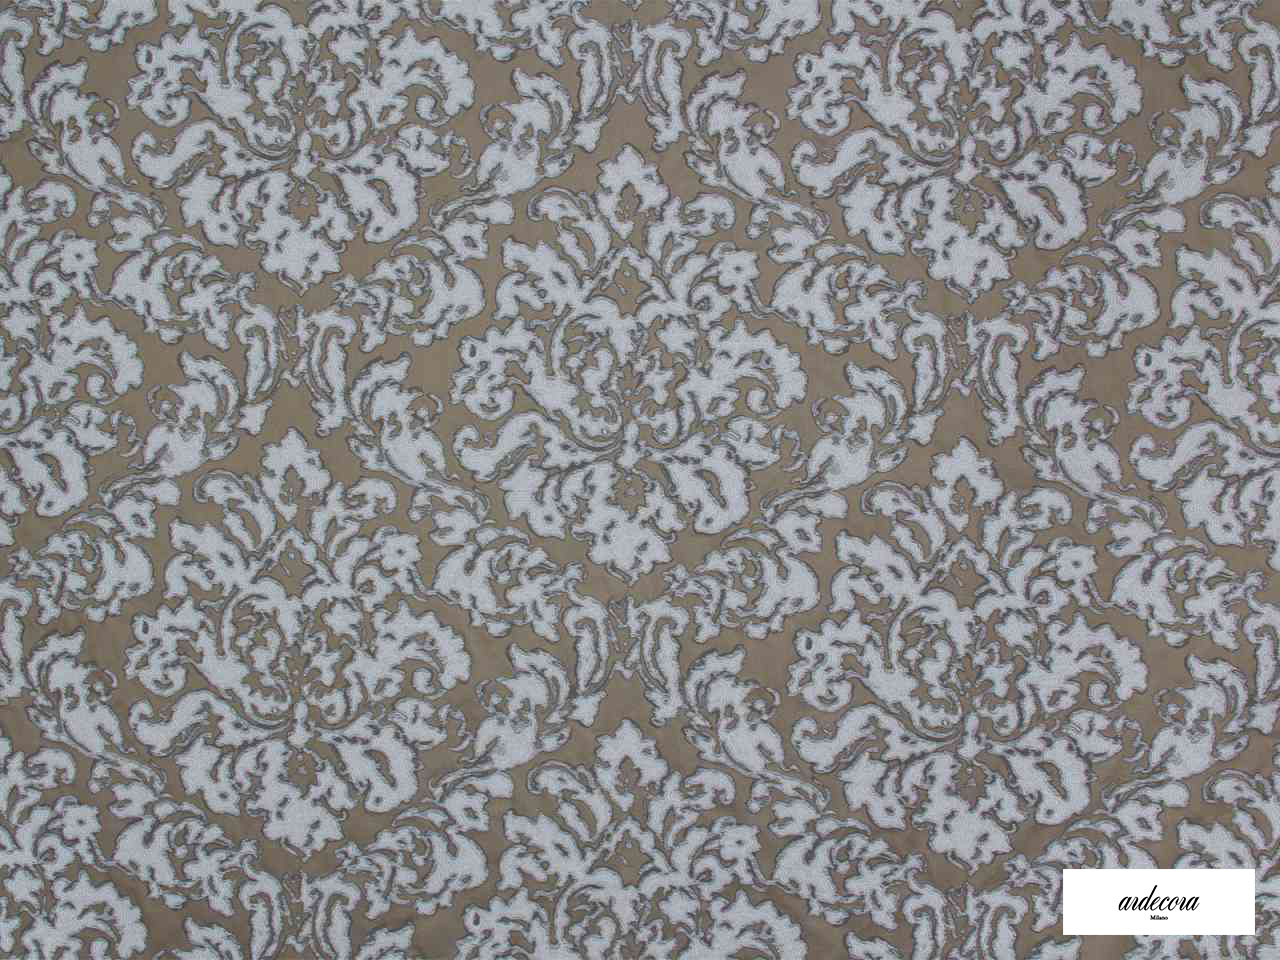 Ardecora - Foro - 15382.194  | Curtain Fabric - Brown, Grey, Damask, Fibre Blends, Domestic Use, Standard Width